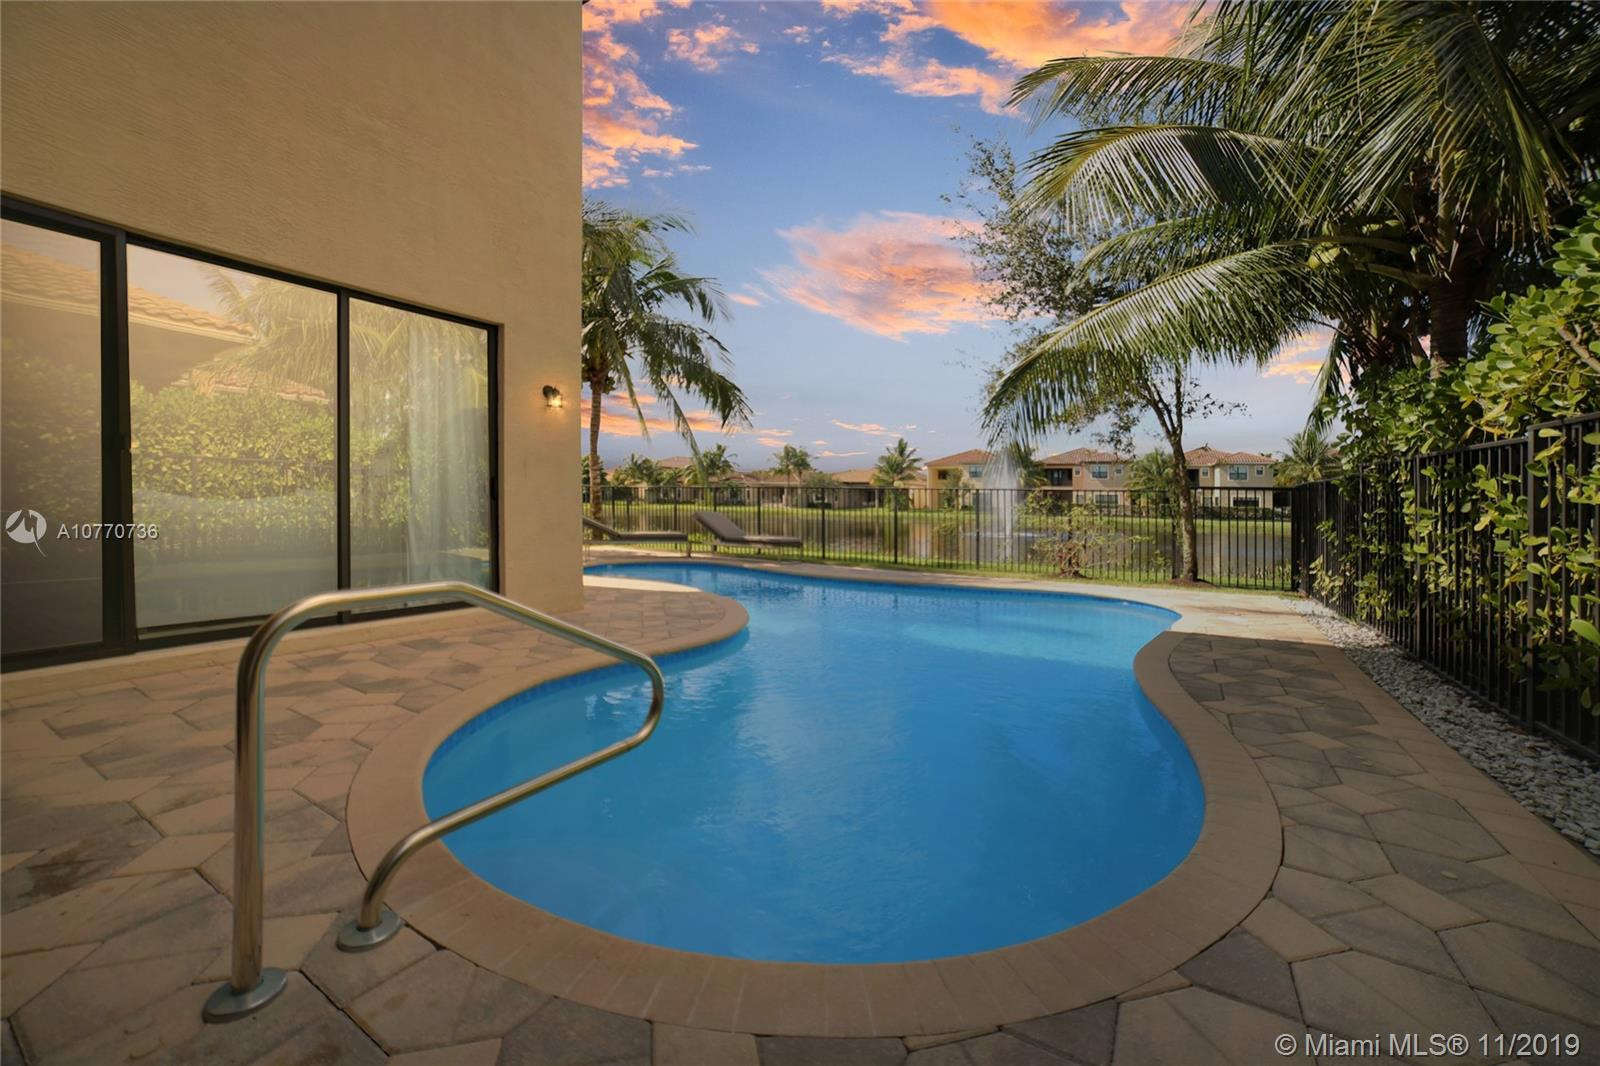 16805 Newark Bay Rd, Delray Beach, FL 33446